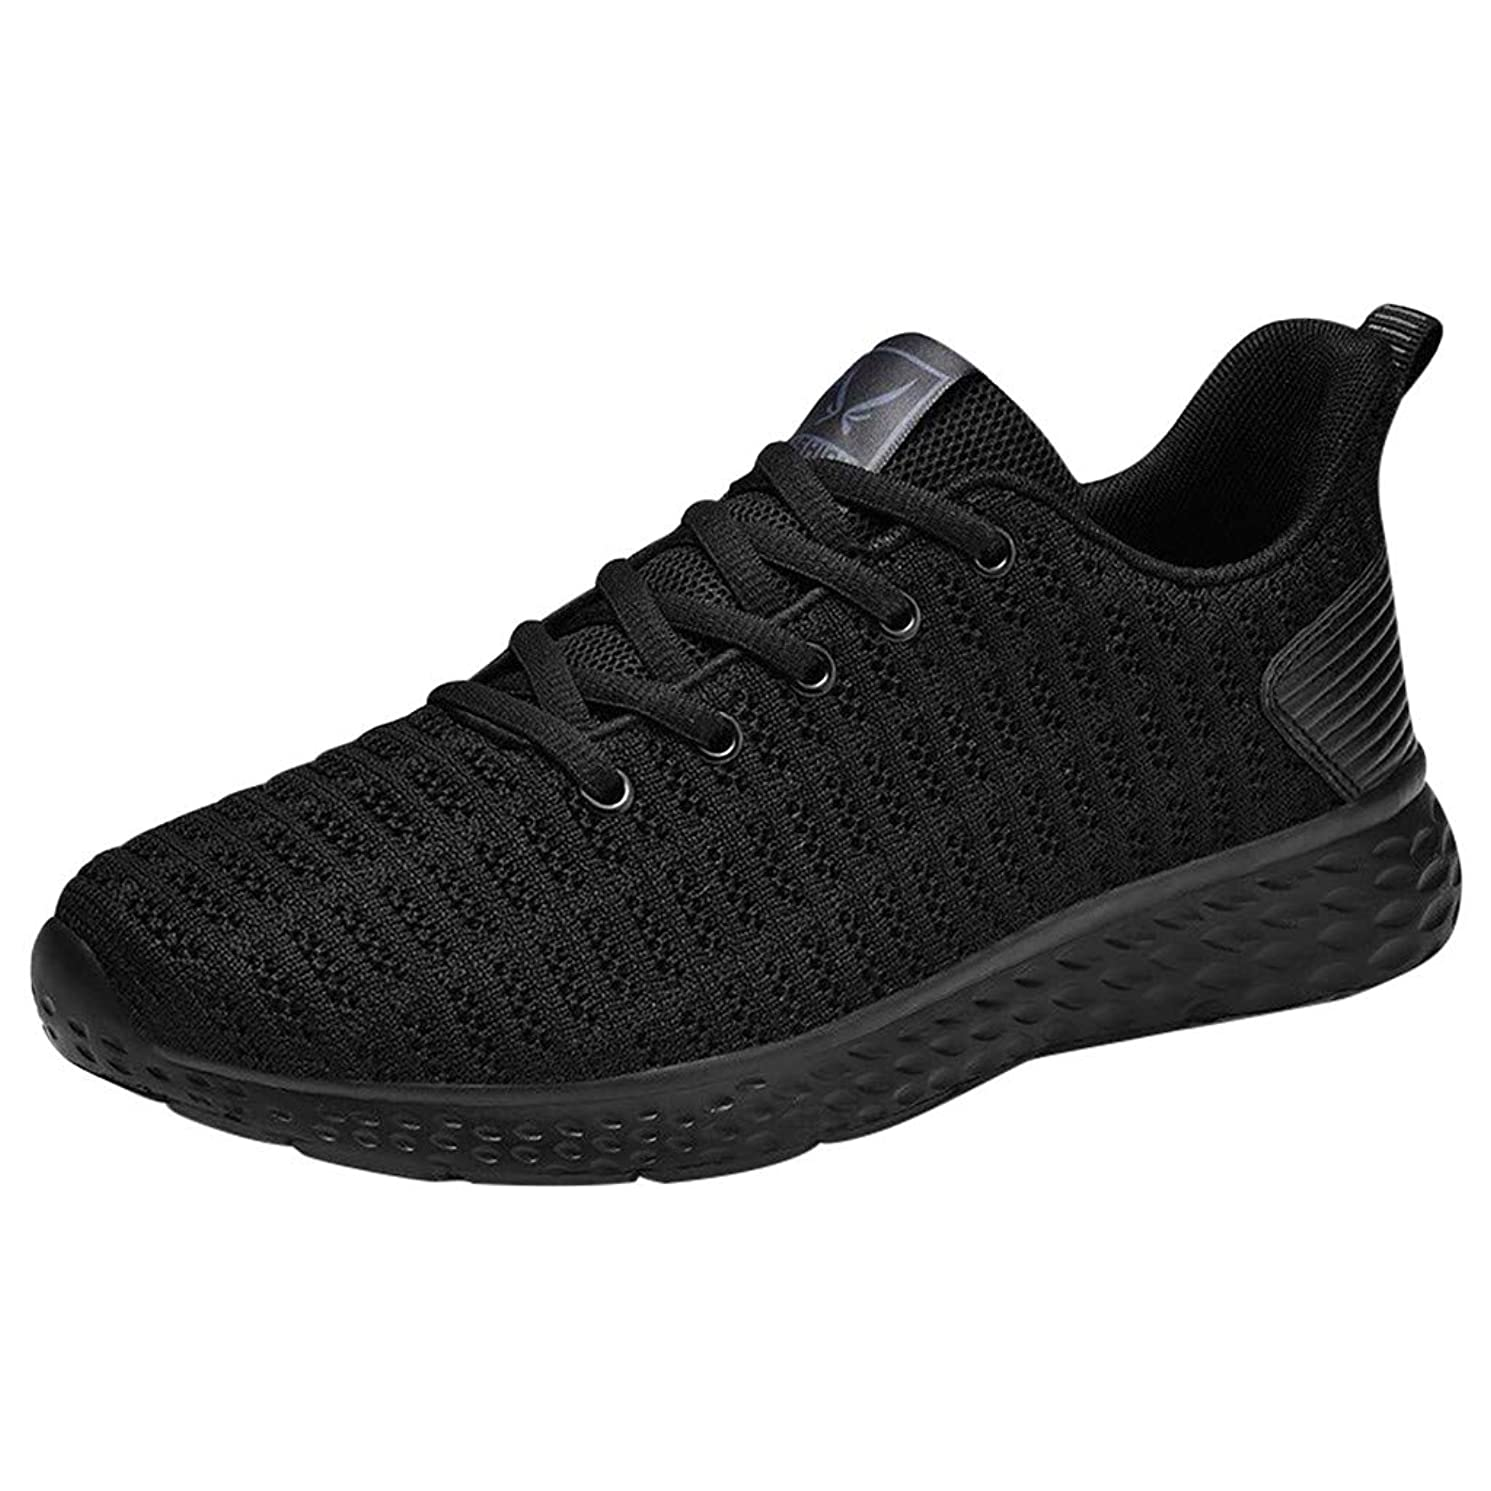 ANJUNIE Couple Mesh Cloth Breathable Outdoor Sneakers Trend Hollow Casual Ultra Lightweight Breathable Athletic Tennis Shoes